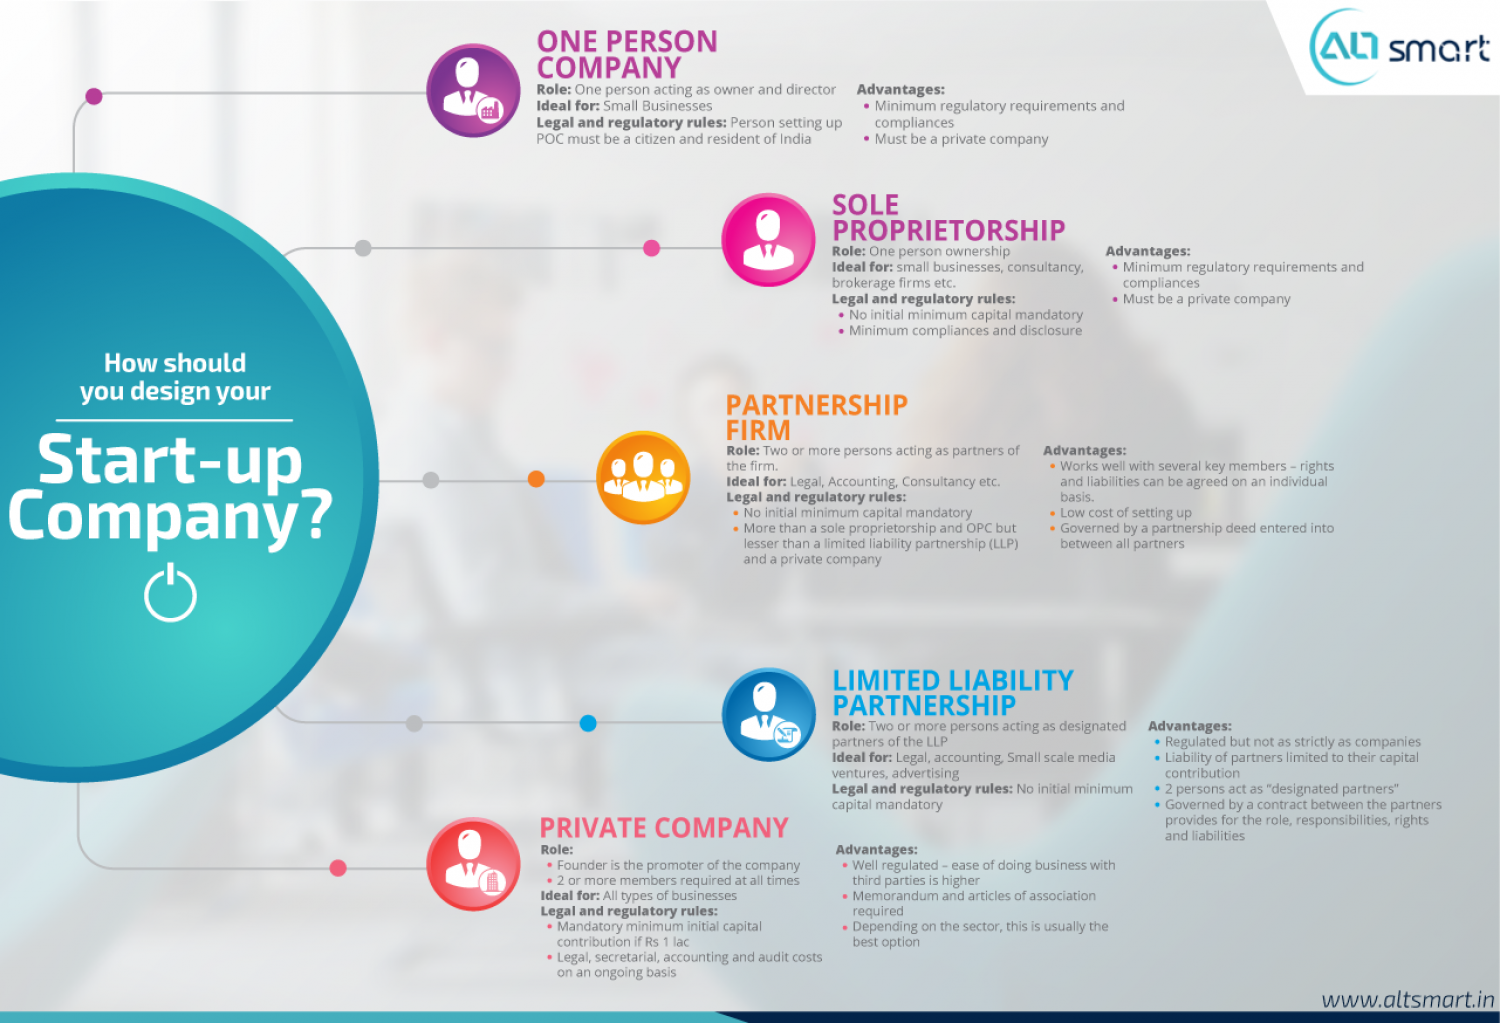 How Should You Design Your Start-up Company Infographic